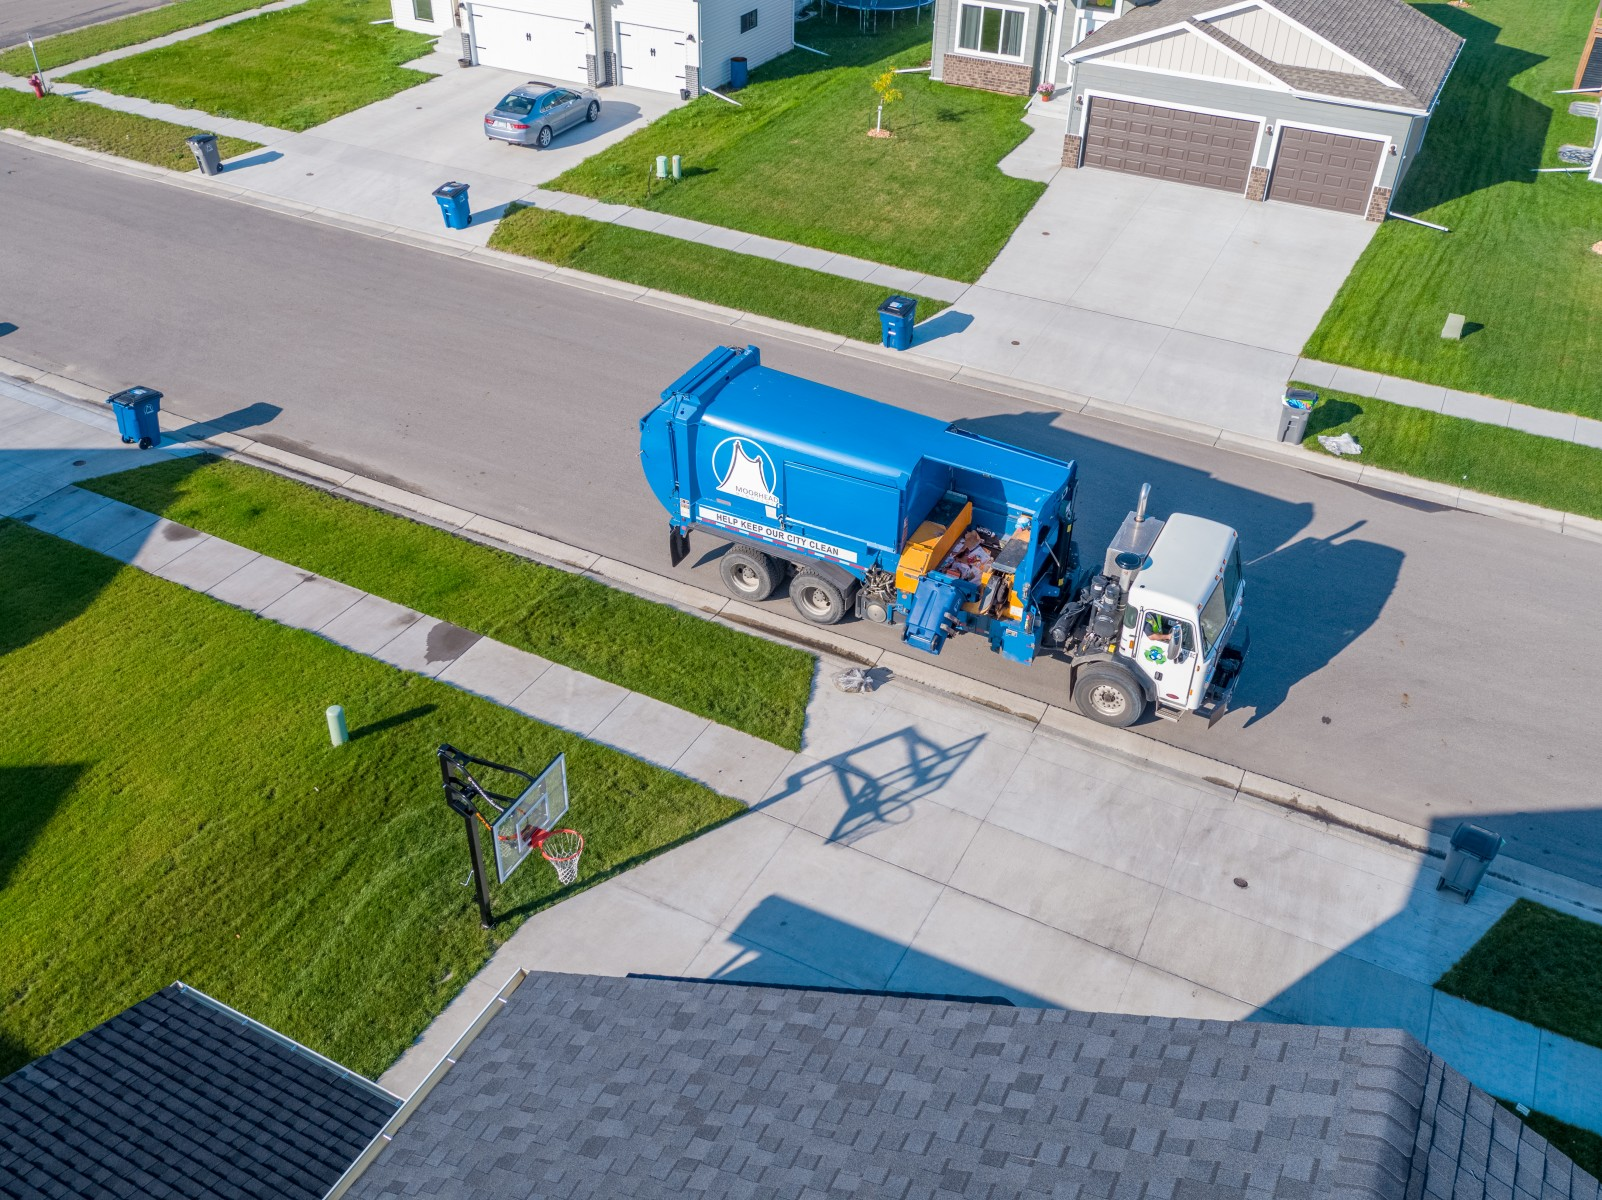 Sourcewell awards contracts in the 'Mobile Refuse Vehicles' category through solicitation #091219. Sourcewell contracts are solicited across North America and competitively awarded on behalf of Sourcewell current and potential government and education member agencies.